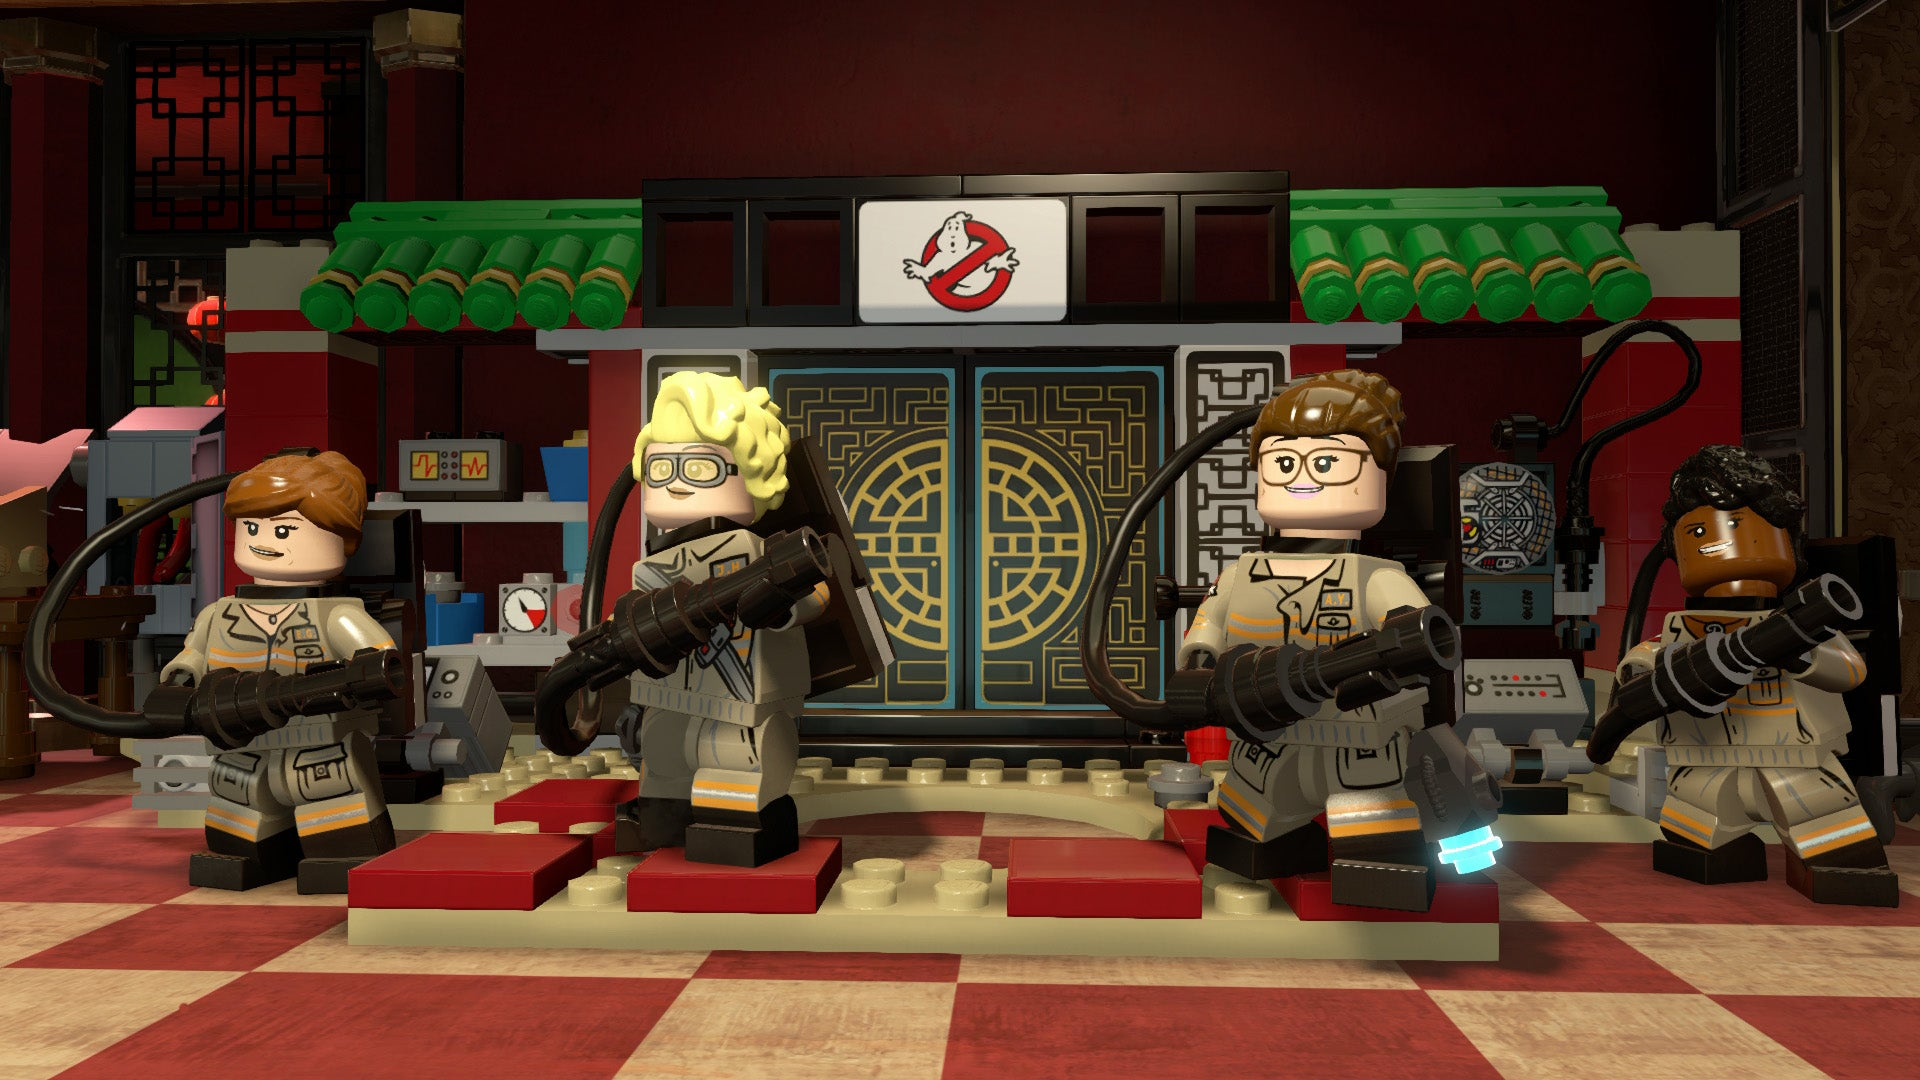 a-team adventure-time ghostbusters harry-potter lego lego-dimensions wbie year-two